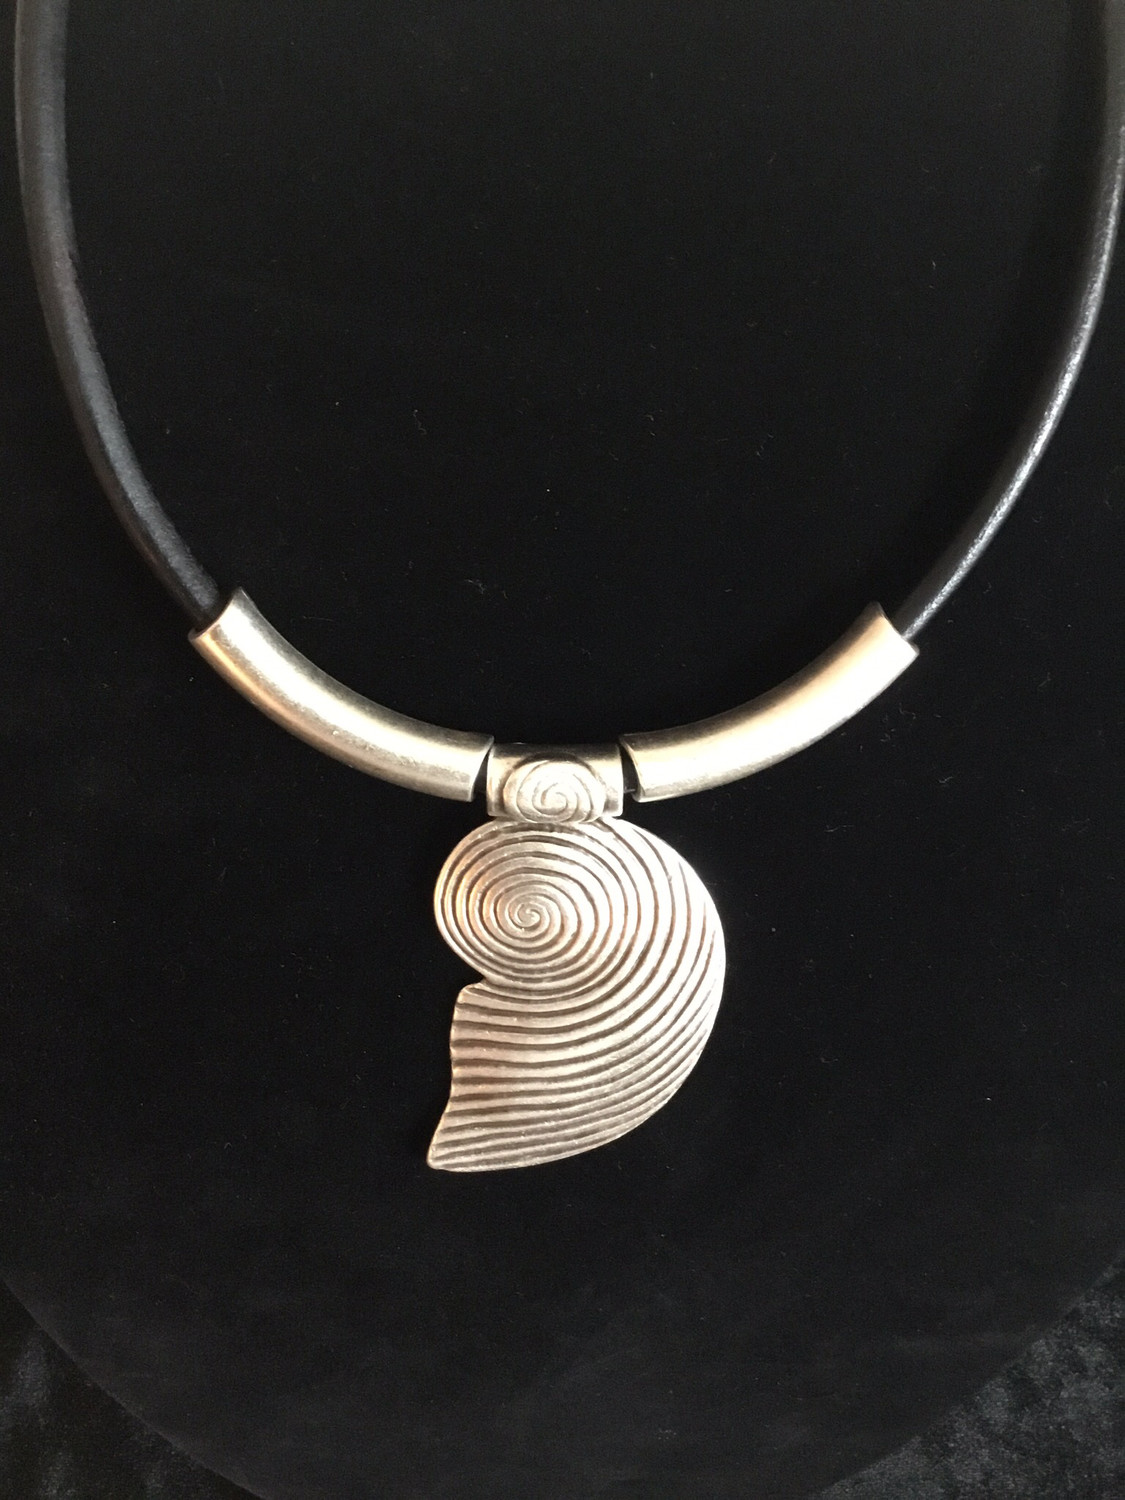 Pewter Nautilus Shell on Black leather Necklace